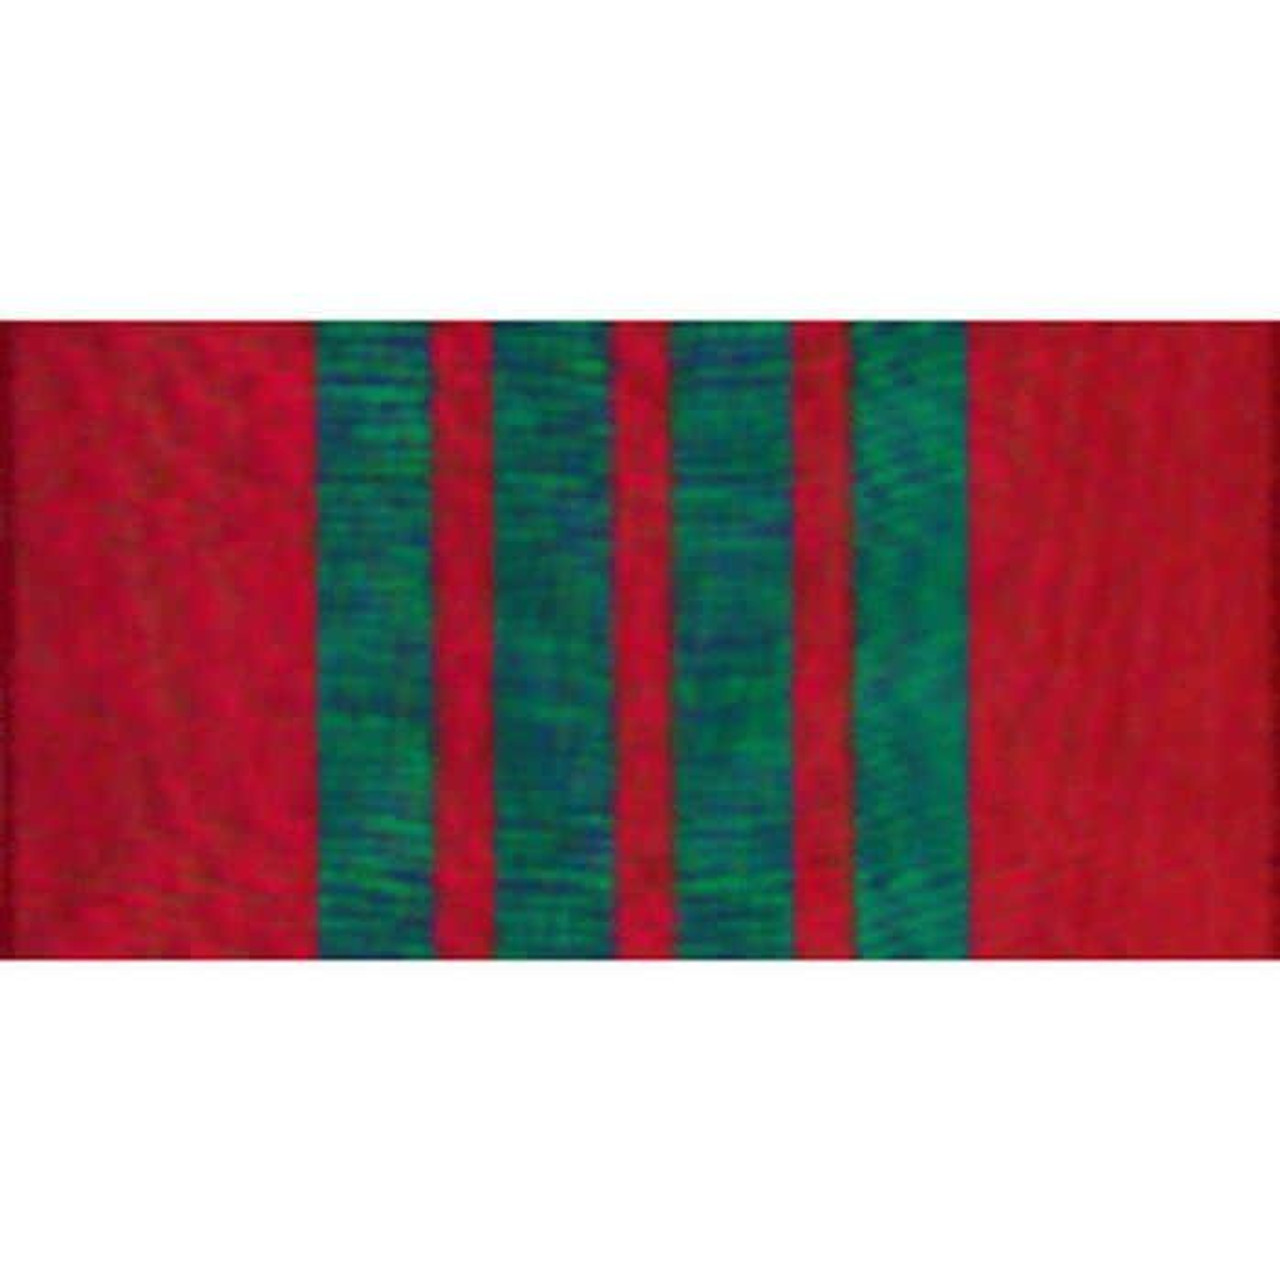 French Croix de Guerre WWII Streamer